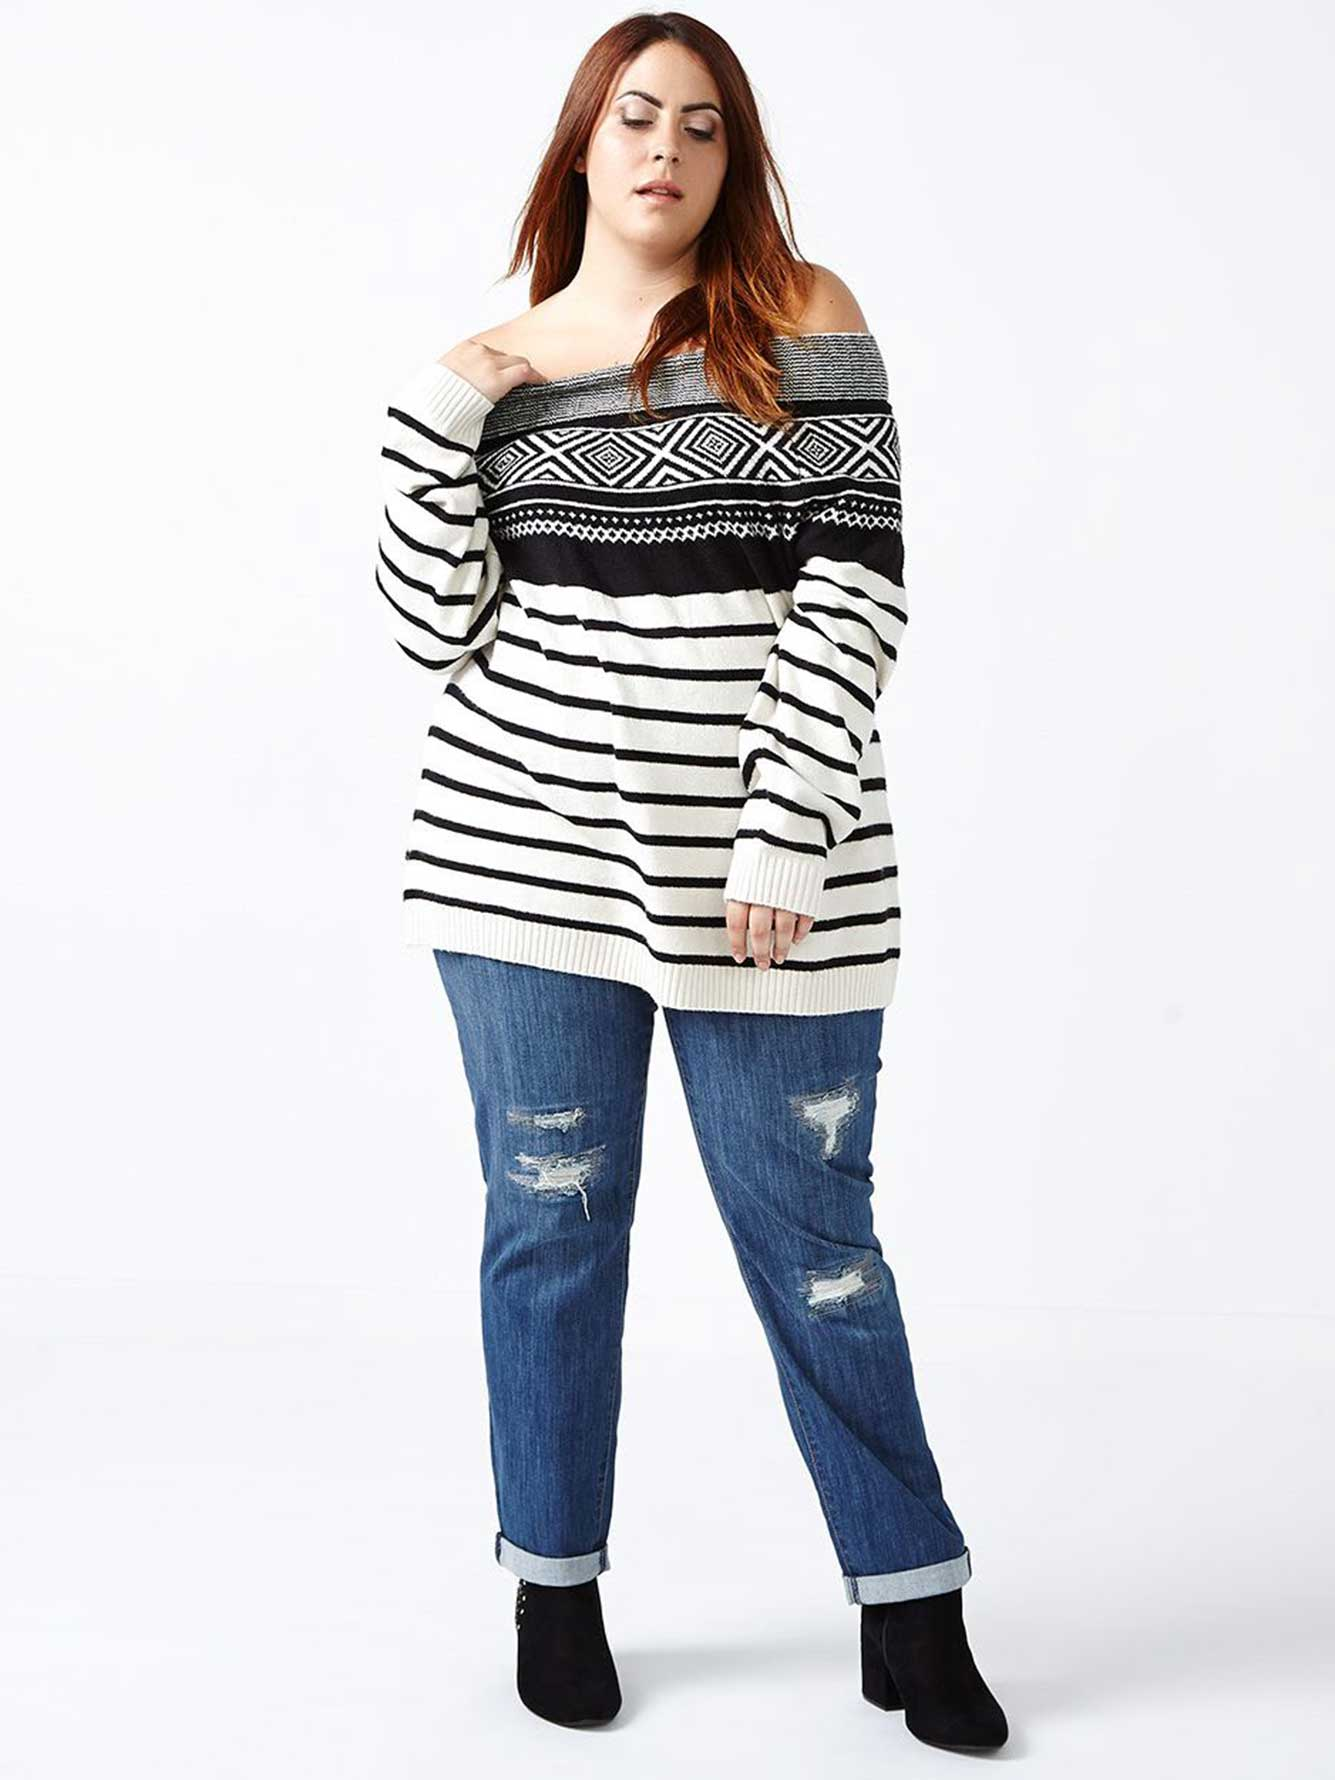 d/c JEANS - Long Sleeve Patterned Sweater